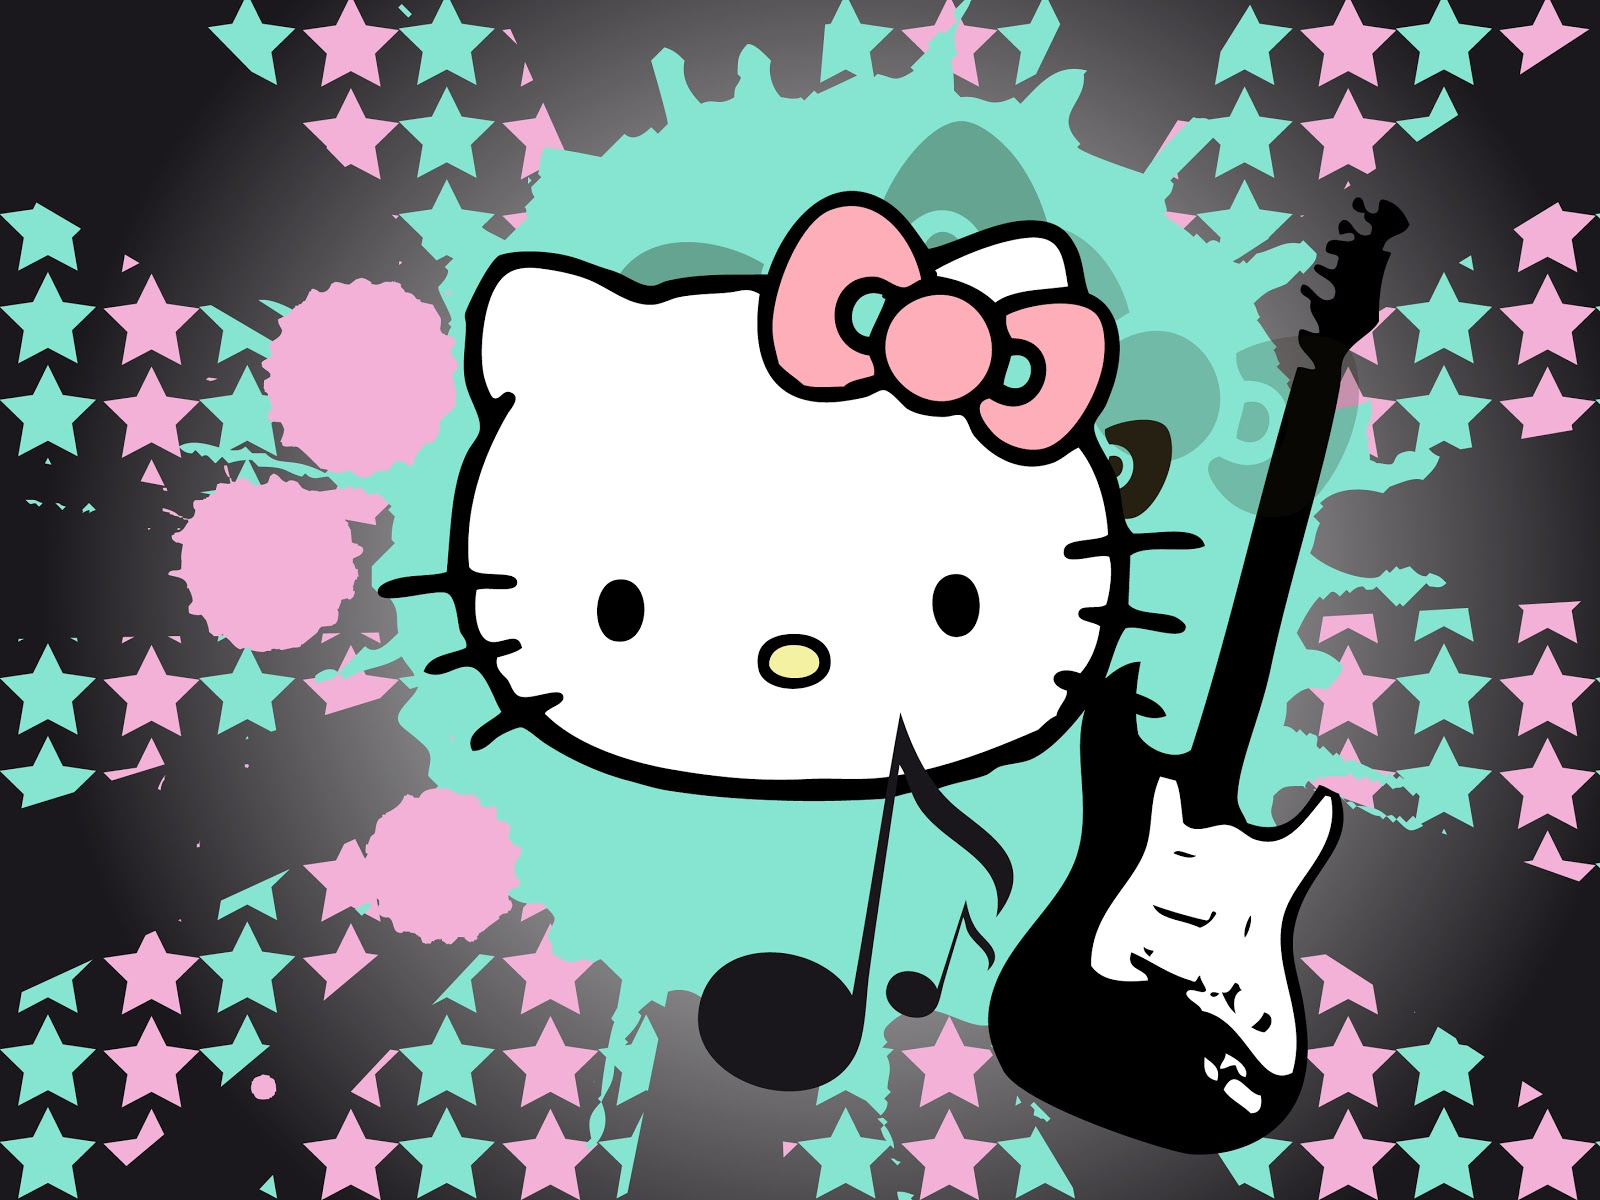 Mashababko Hello Kitty Wallpaper For Facebook